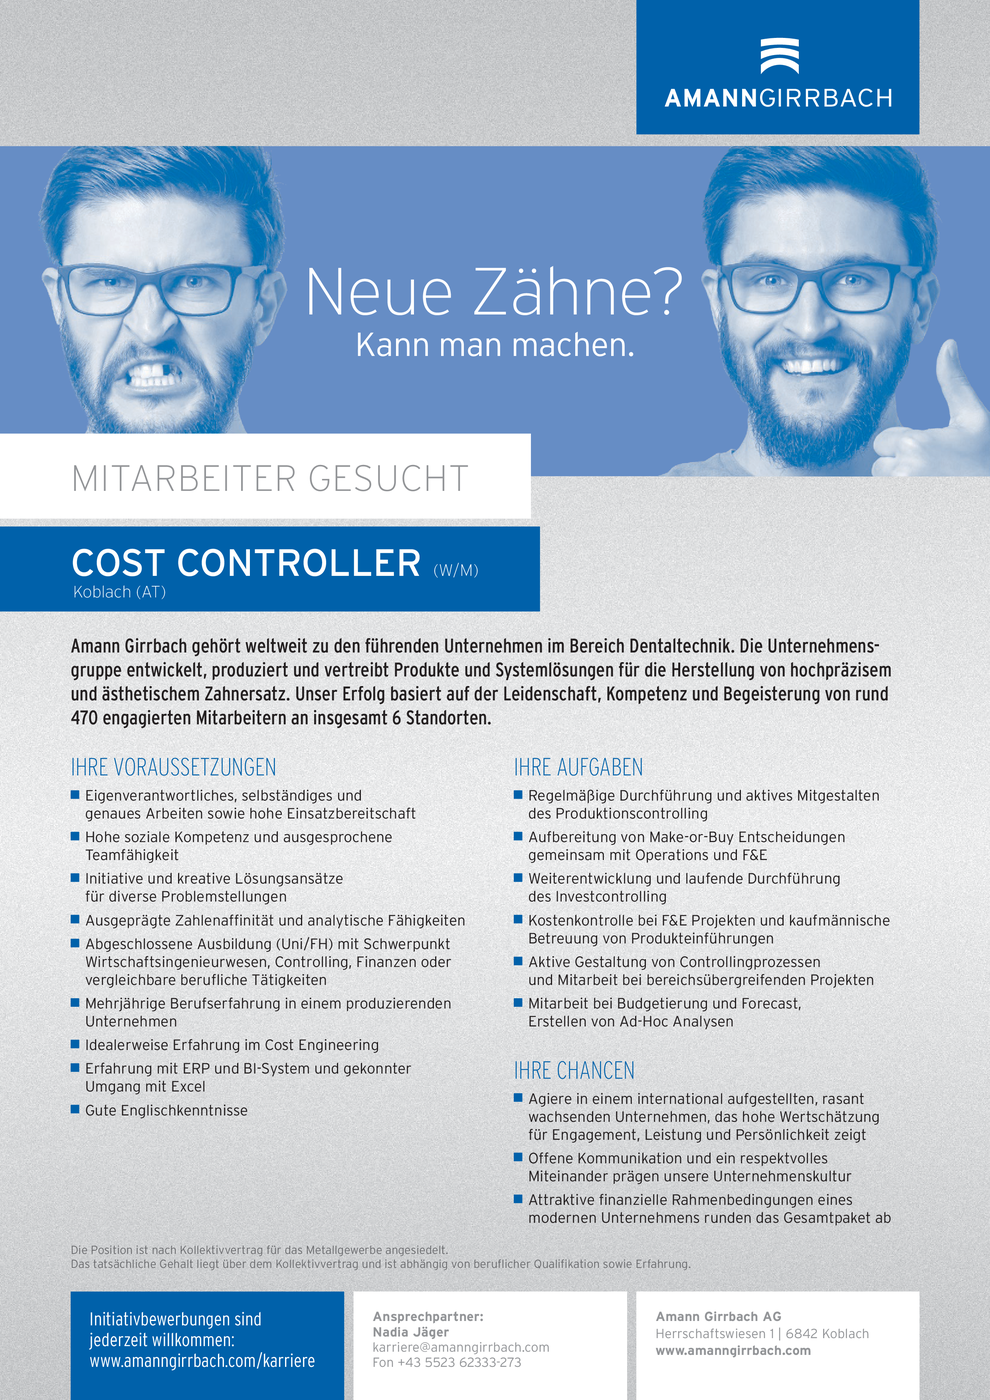 COST CONTROLLER (w/m)